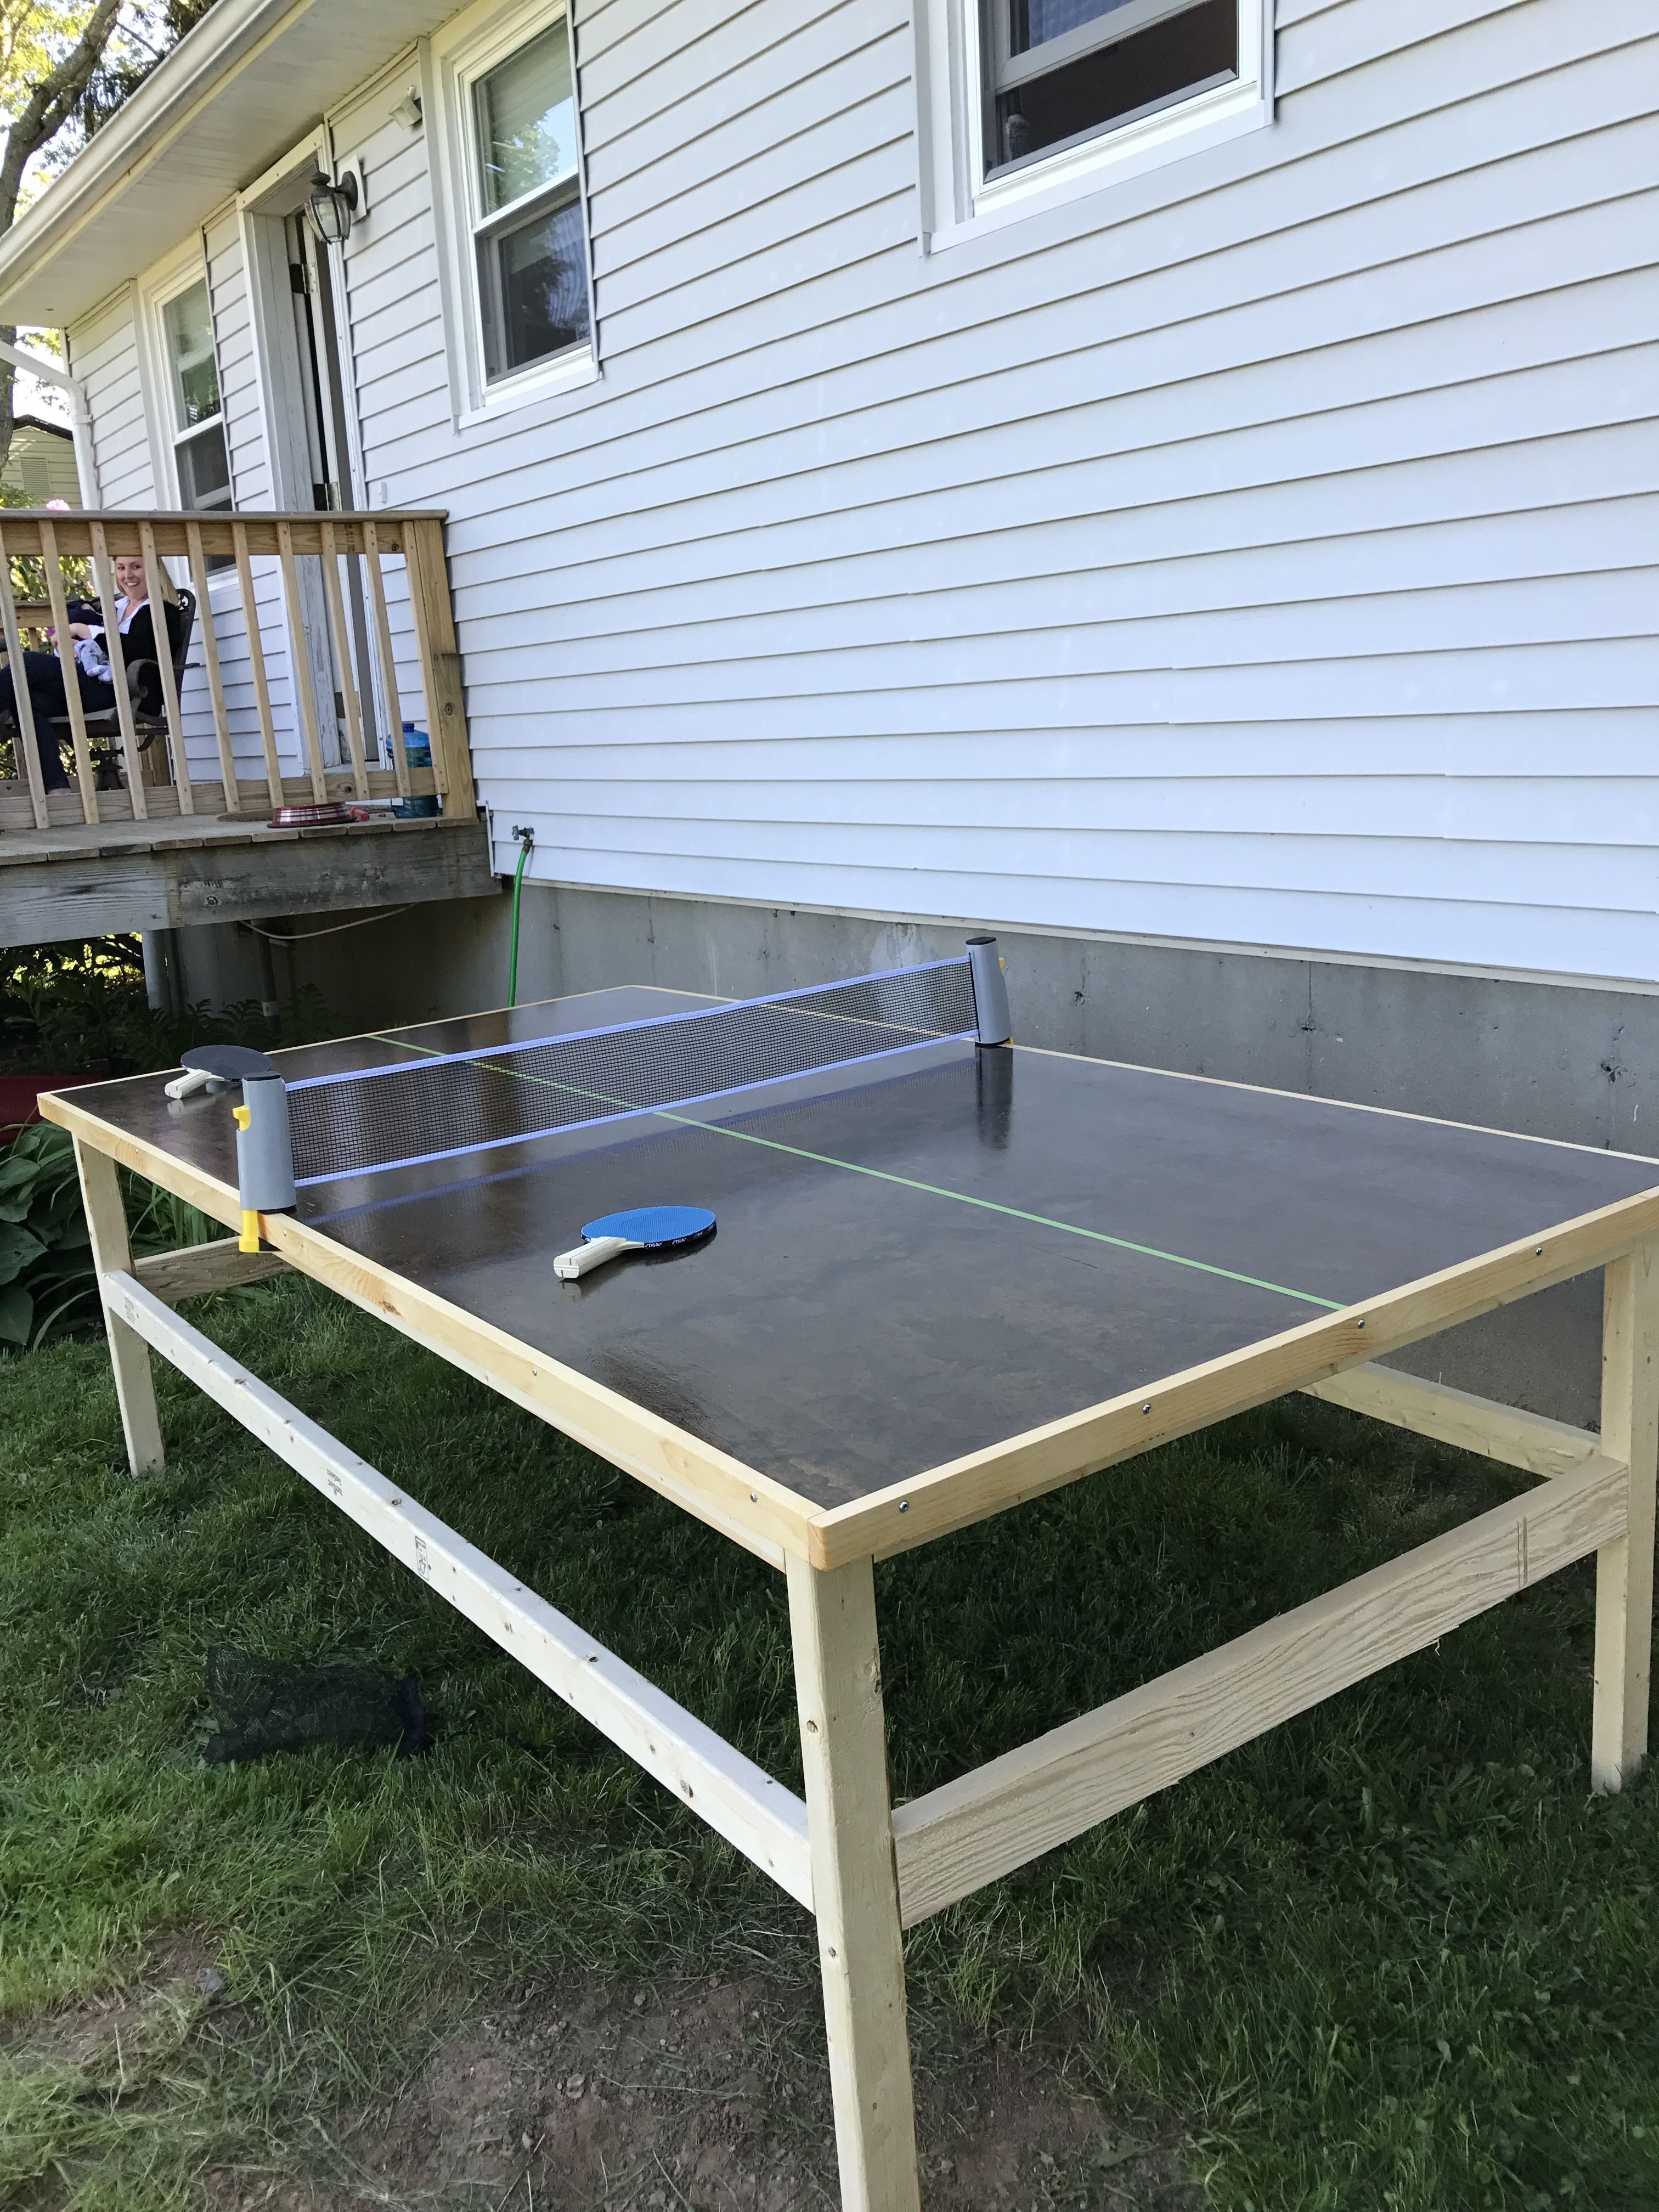 Best Outdoor Ping Pong Table Outdoor Ping Pong Table Ping Pong Table Ping Pong Table Diy